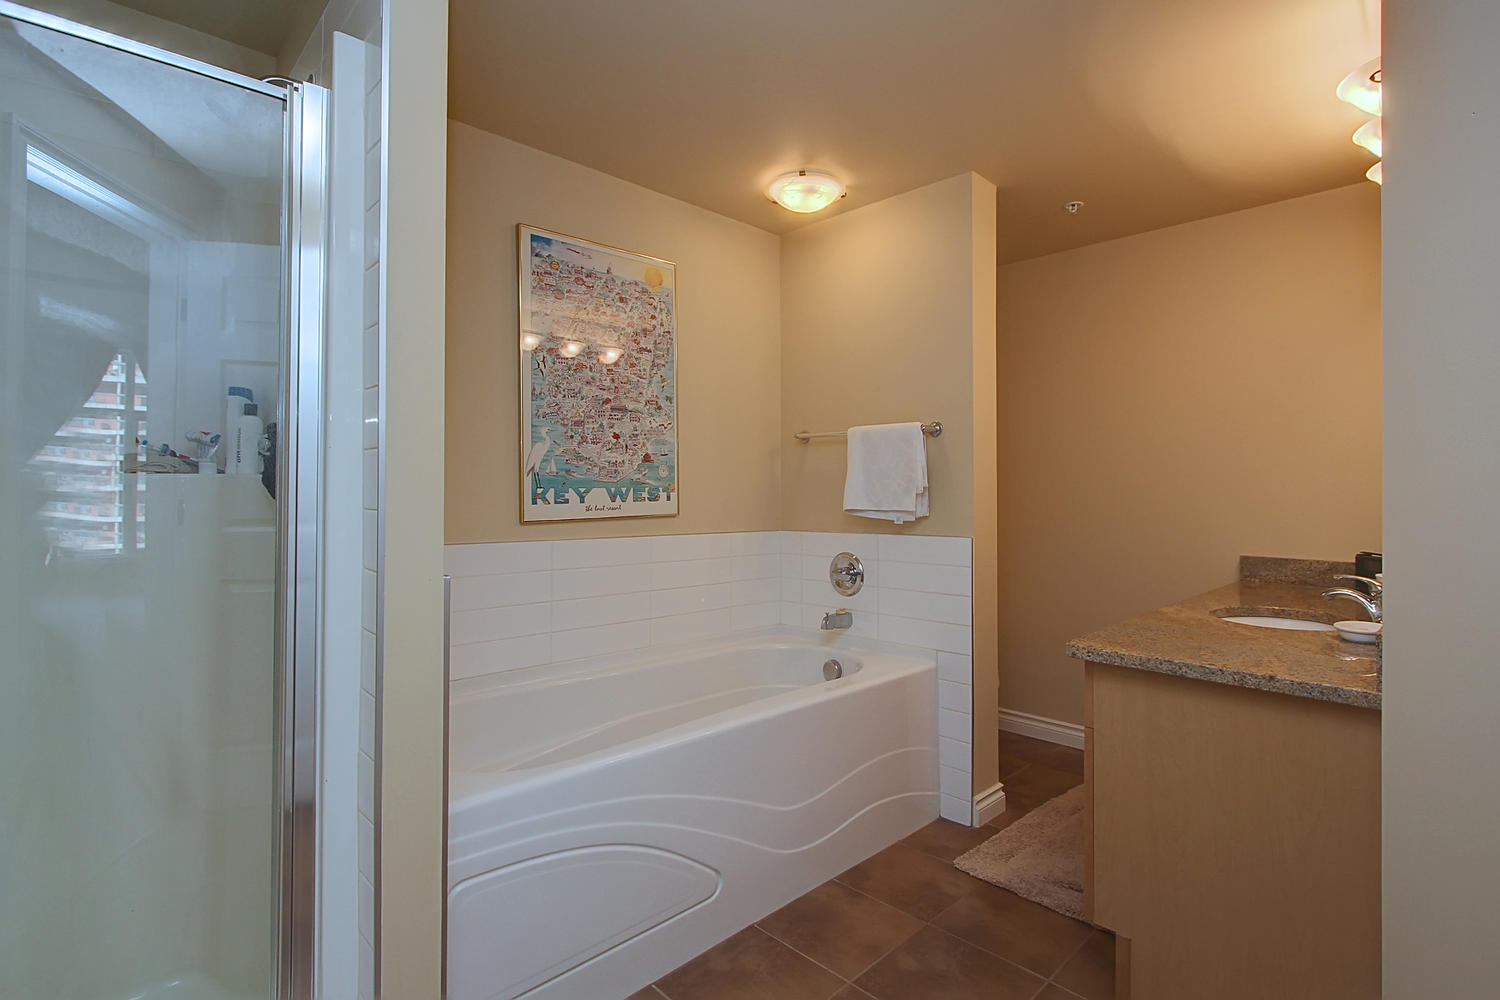 Ensuite Bathroom Edmonton downtown edmonton condo - edmonton condo and real estate expert